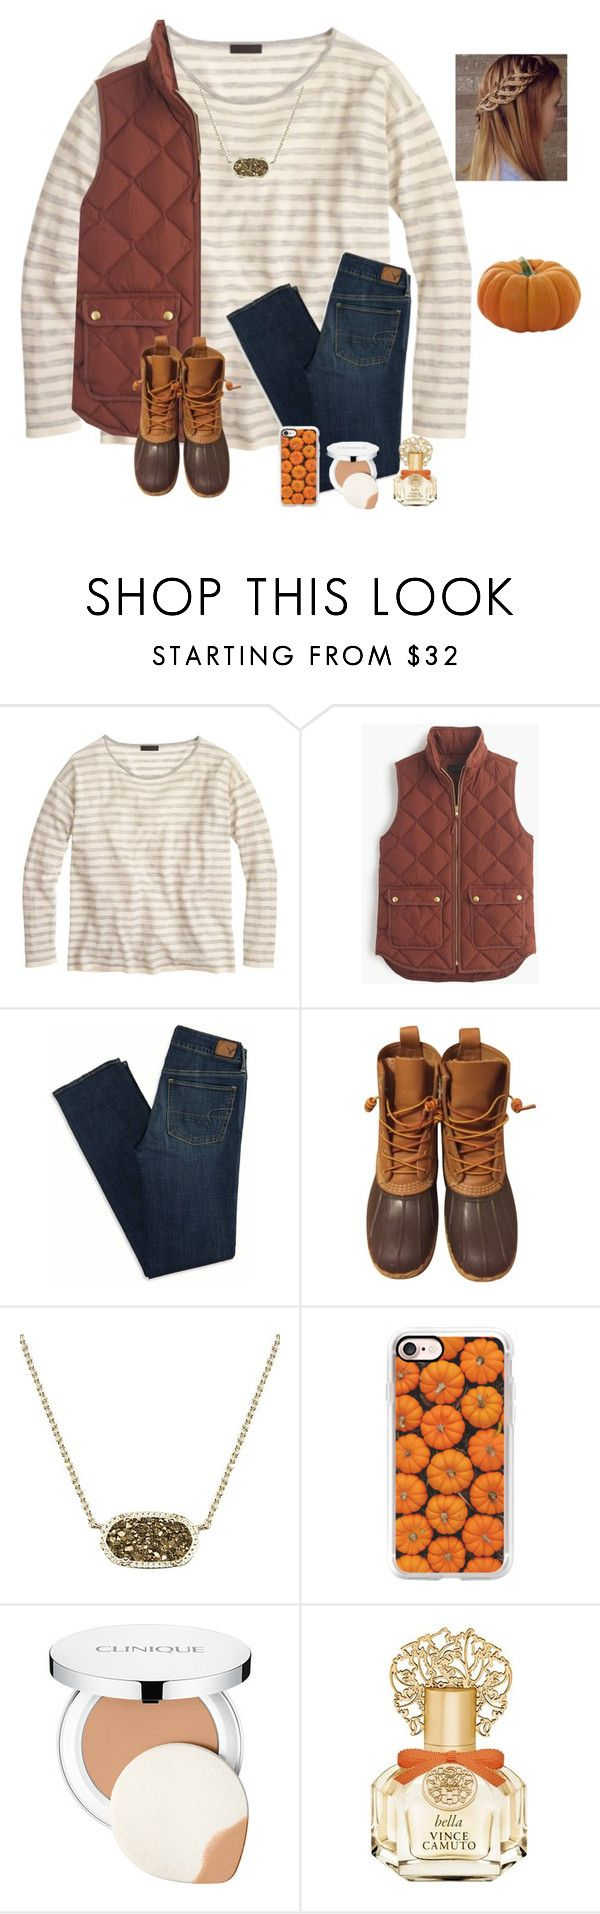 """""""Day 2: Pumpkin patch⚜️"""" by raquate1232 ❤ liked on Polyvore featuring J.Crew, American Eagle Outfitters, L.L.Bean, Kendra Scott, Casetify, Clinique, Vince Camuto and kennshalloweencontest"""